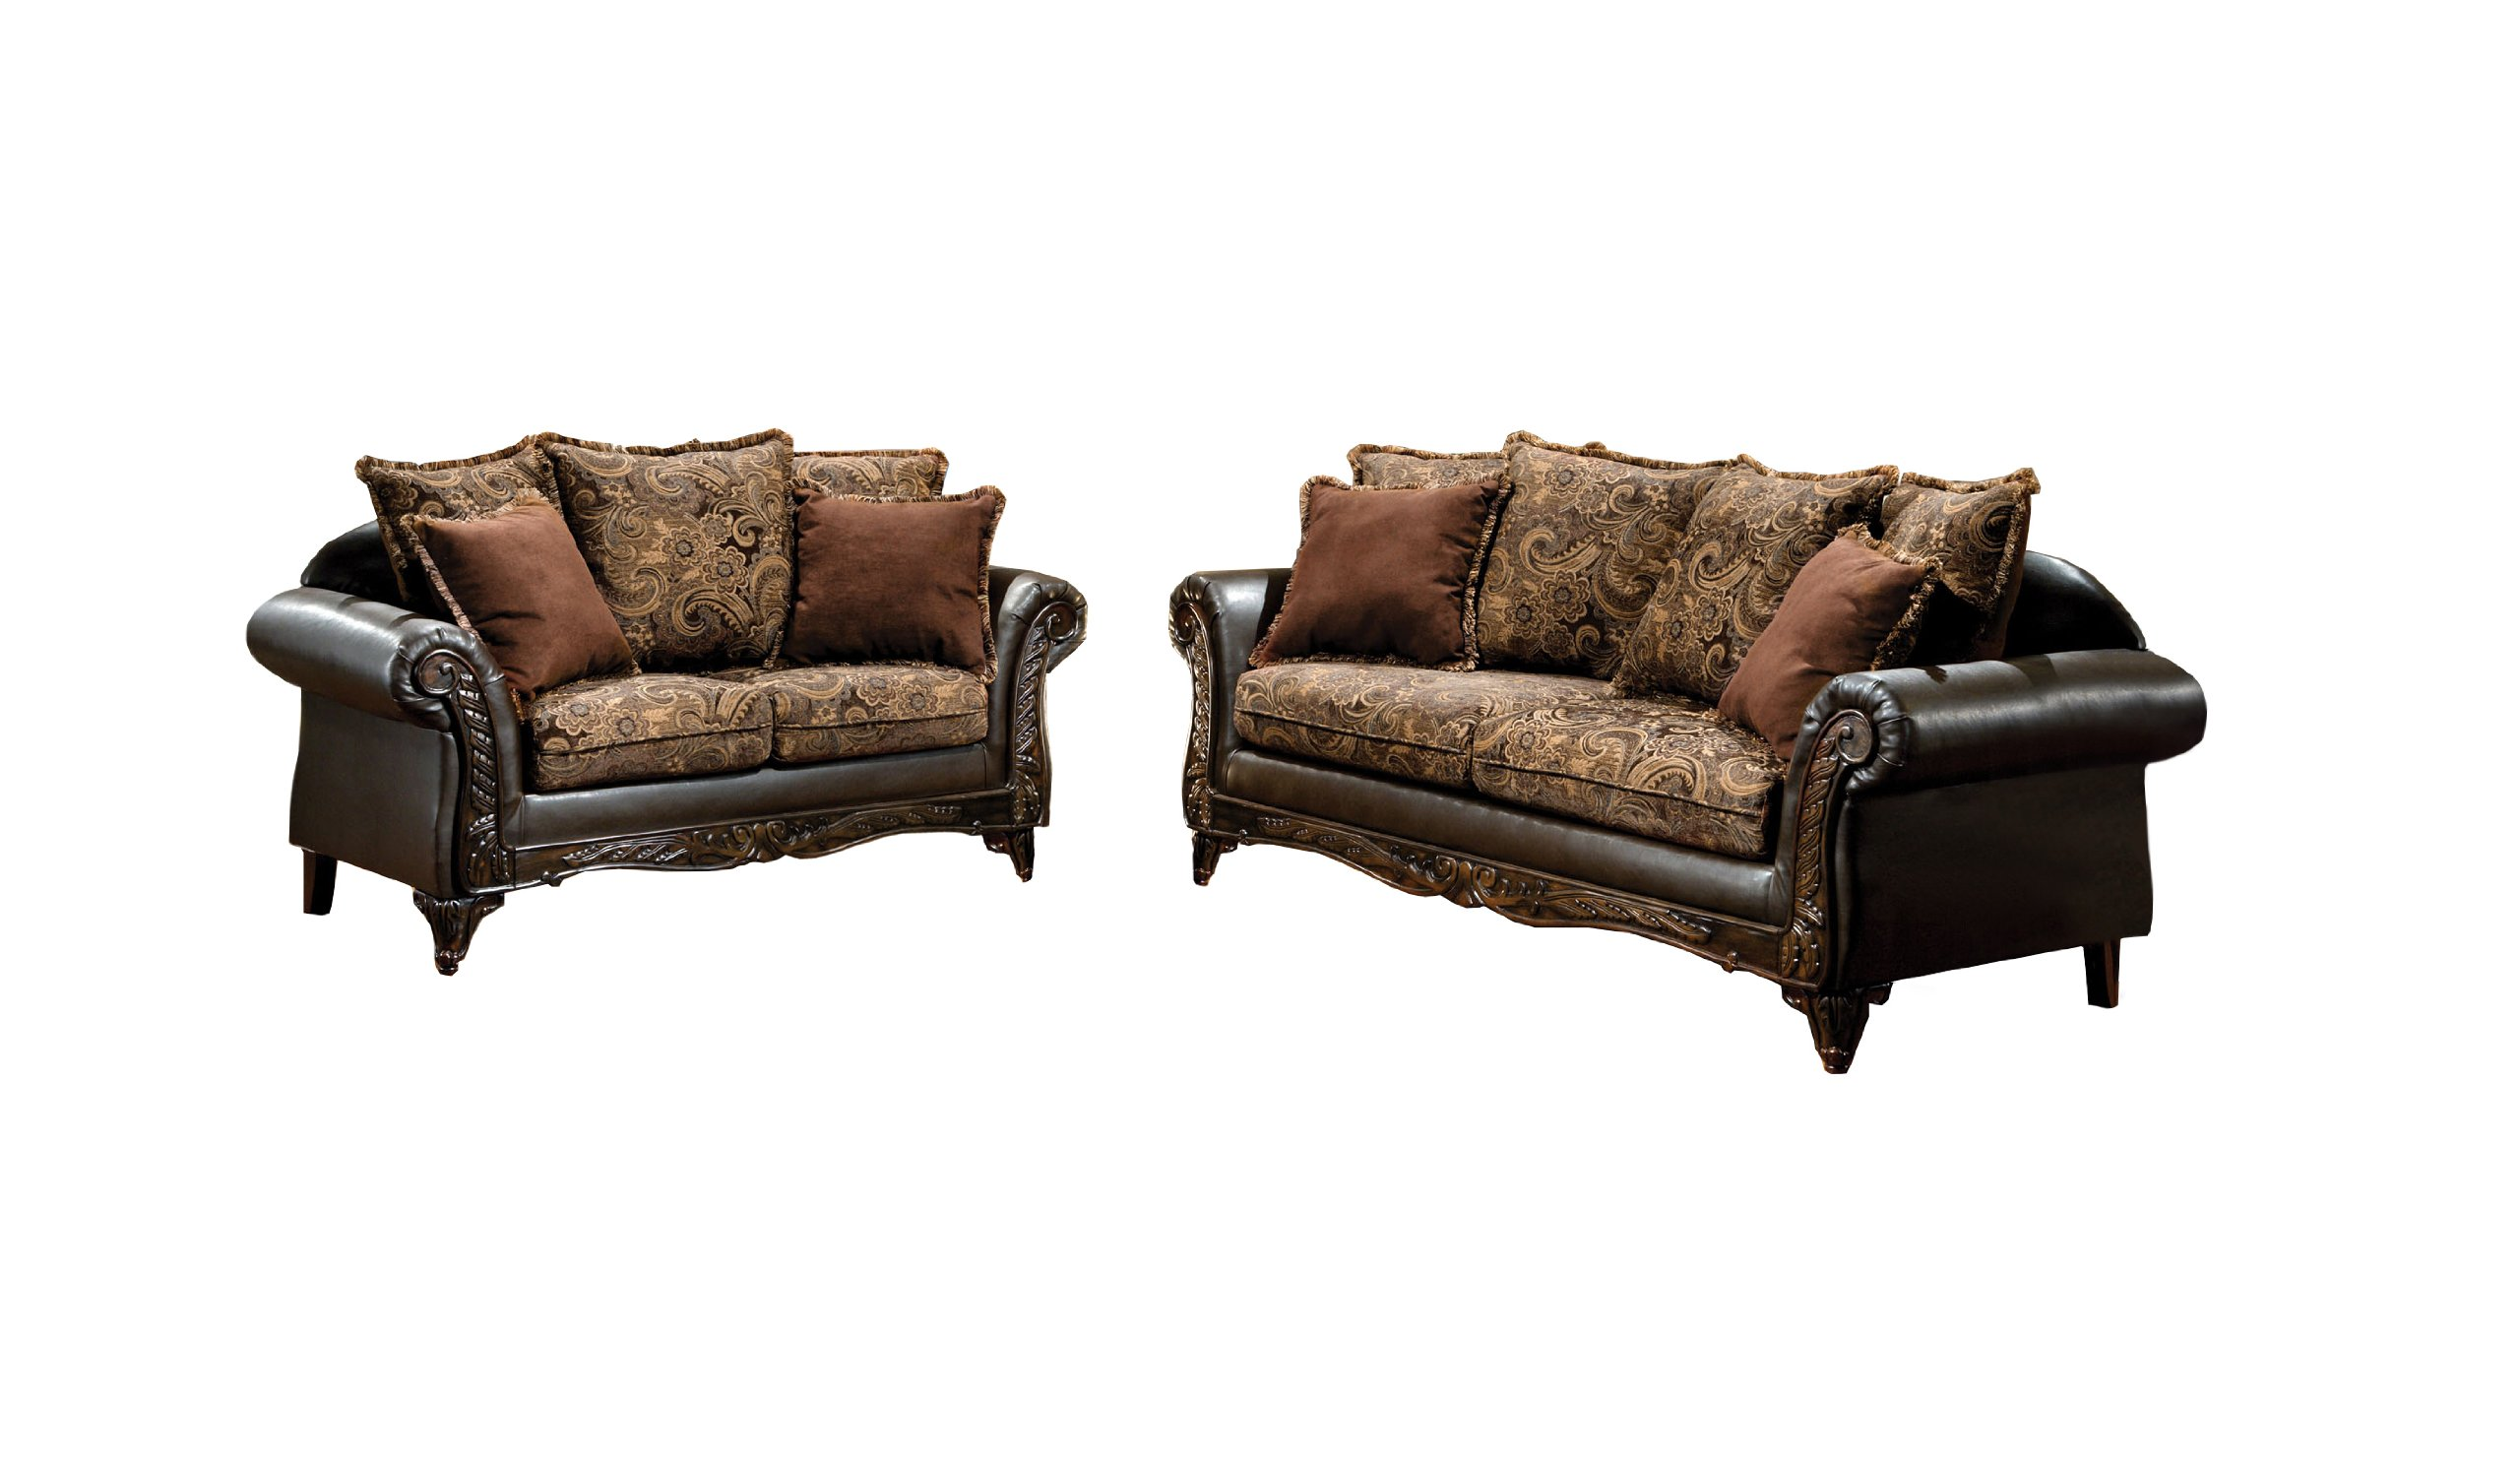 Furniture of America Inigo 2-Piece Fabric and Leatherette Sofa Set with Accent Pillows and Wood Trim, Dark Brown Floral Print by Furniture of America (Image #1)